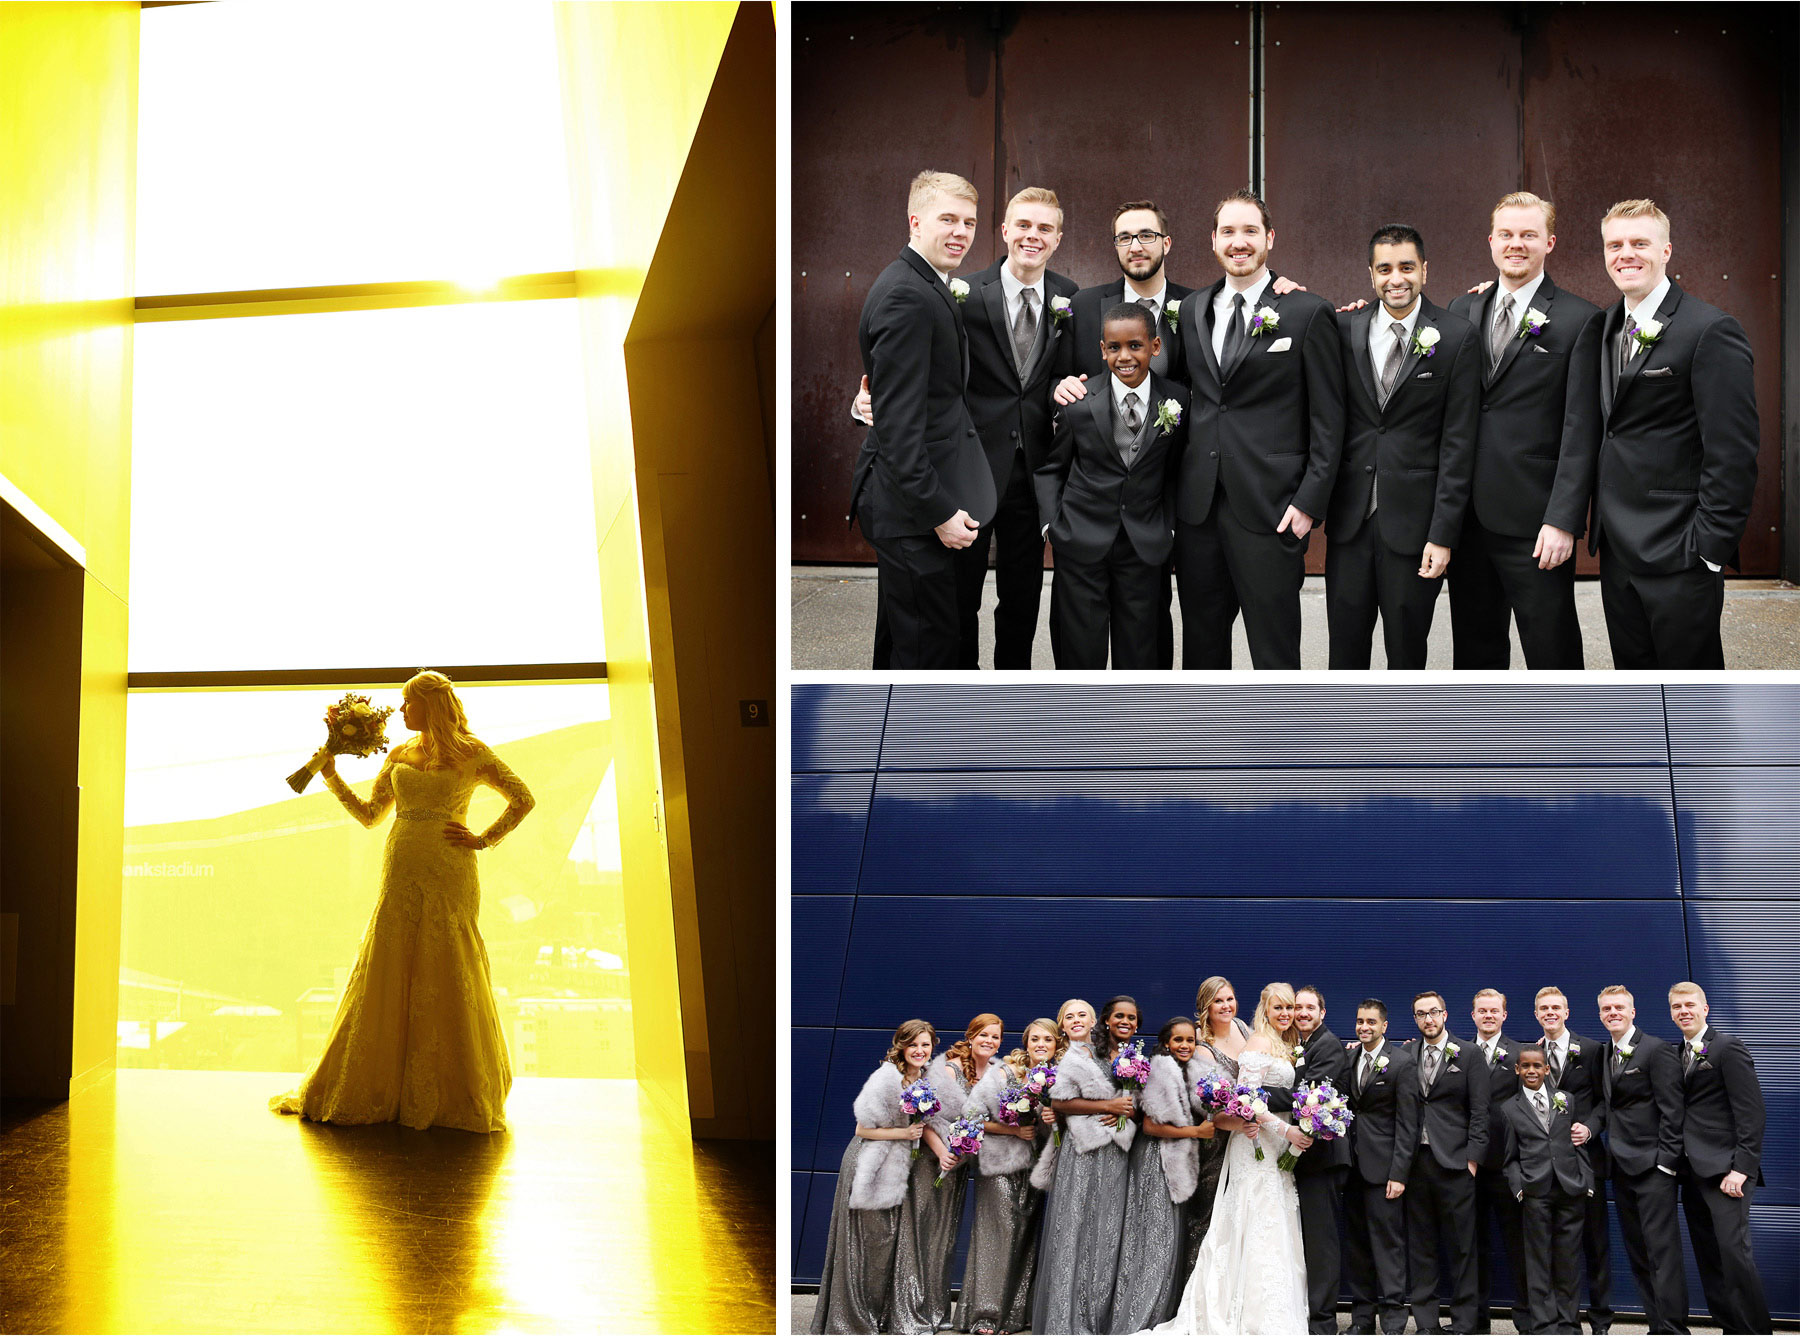 12-Minneapolis-Minnesota-Wedding-Photographer-by-Andrew-Vick-Photography-Winter-Guthrie-Theater-Bride-Groom-Bridal-Party-Bridesmaids-Groomsmen-Level-Nine-Yellow-Room-Jennifer-and-Phillip.jpg